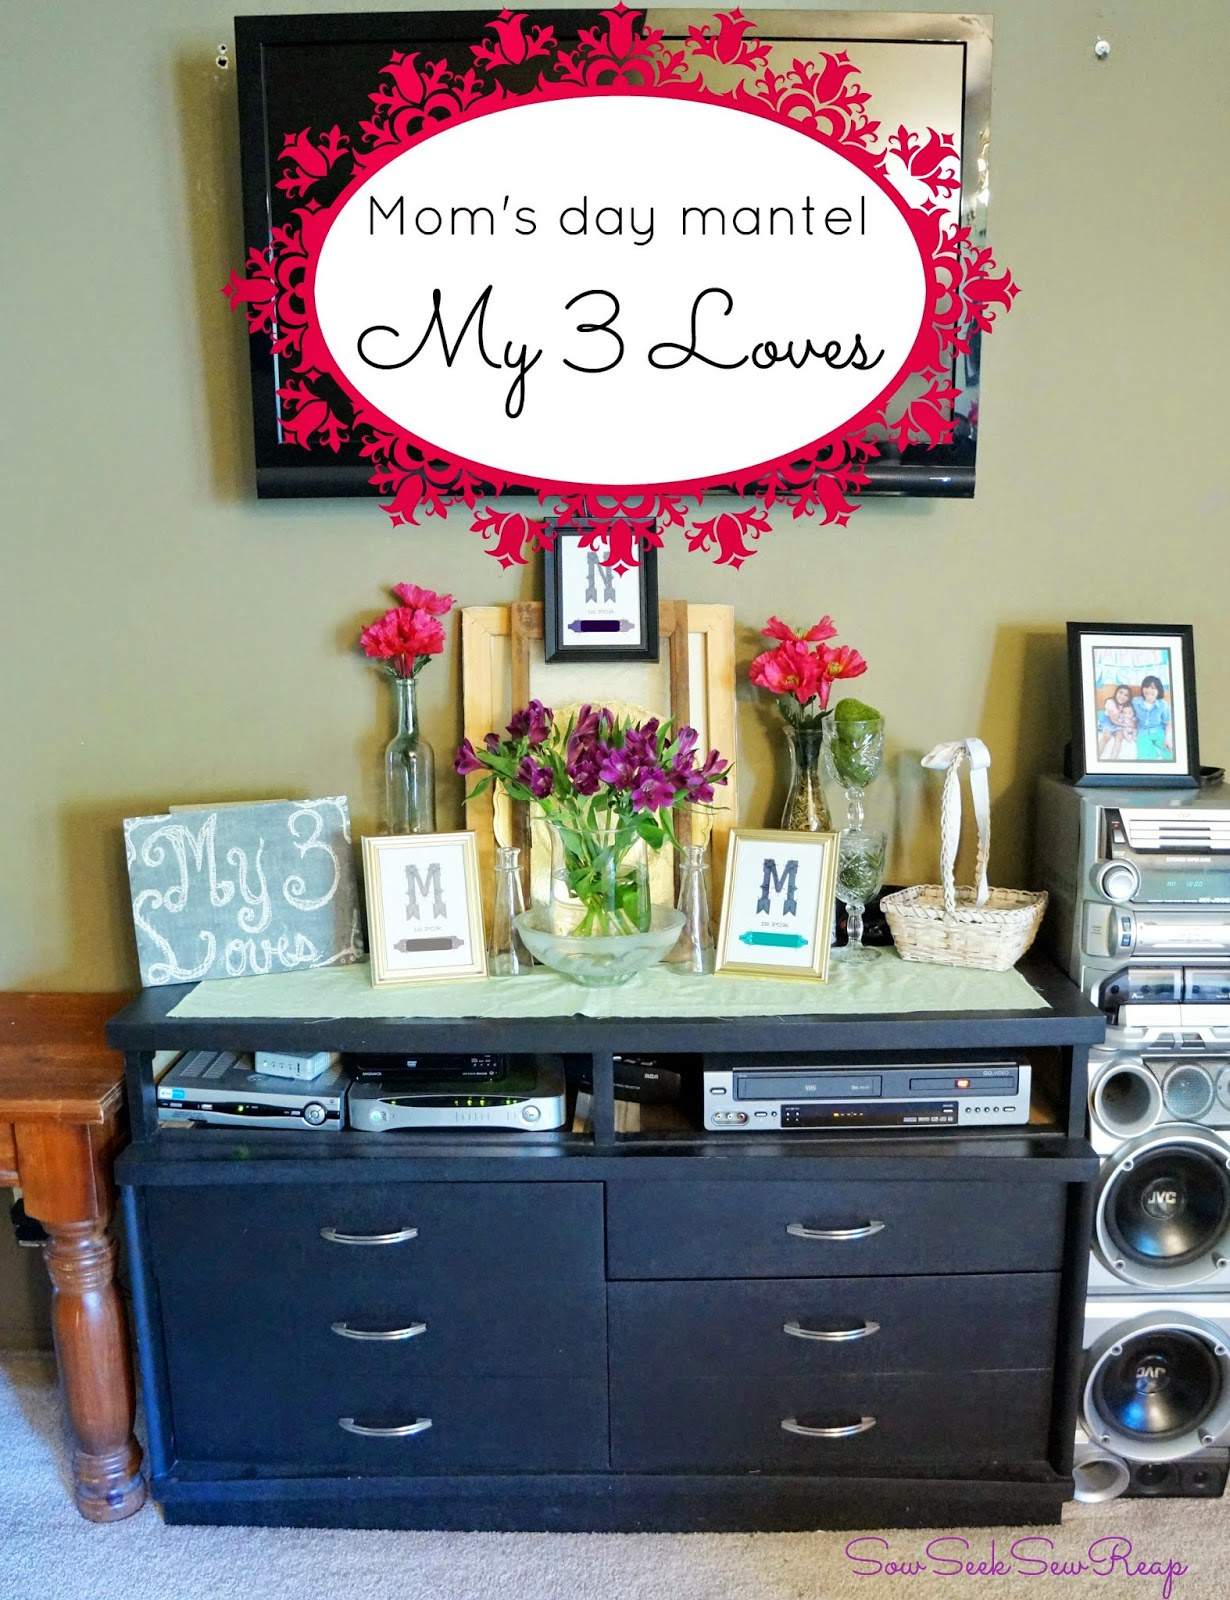 mom's day, mom's day decor, mom's mantel